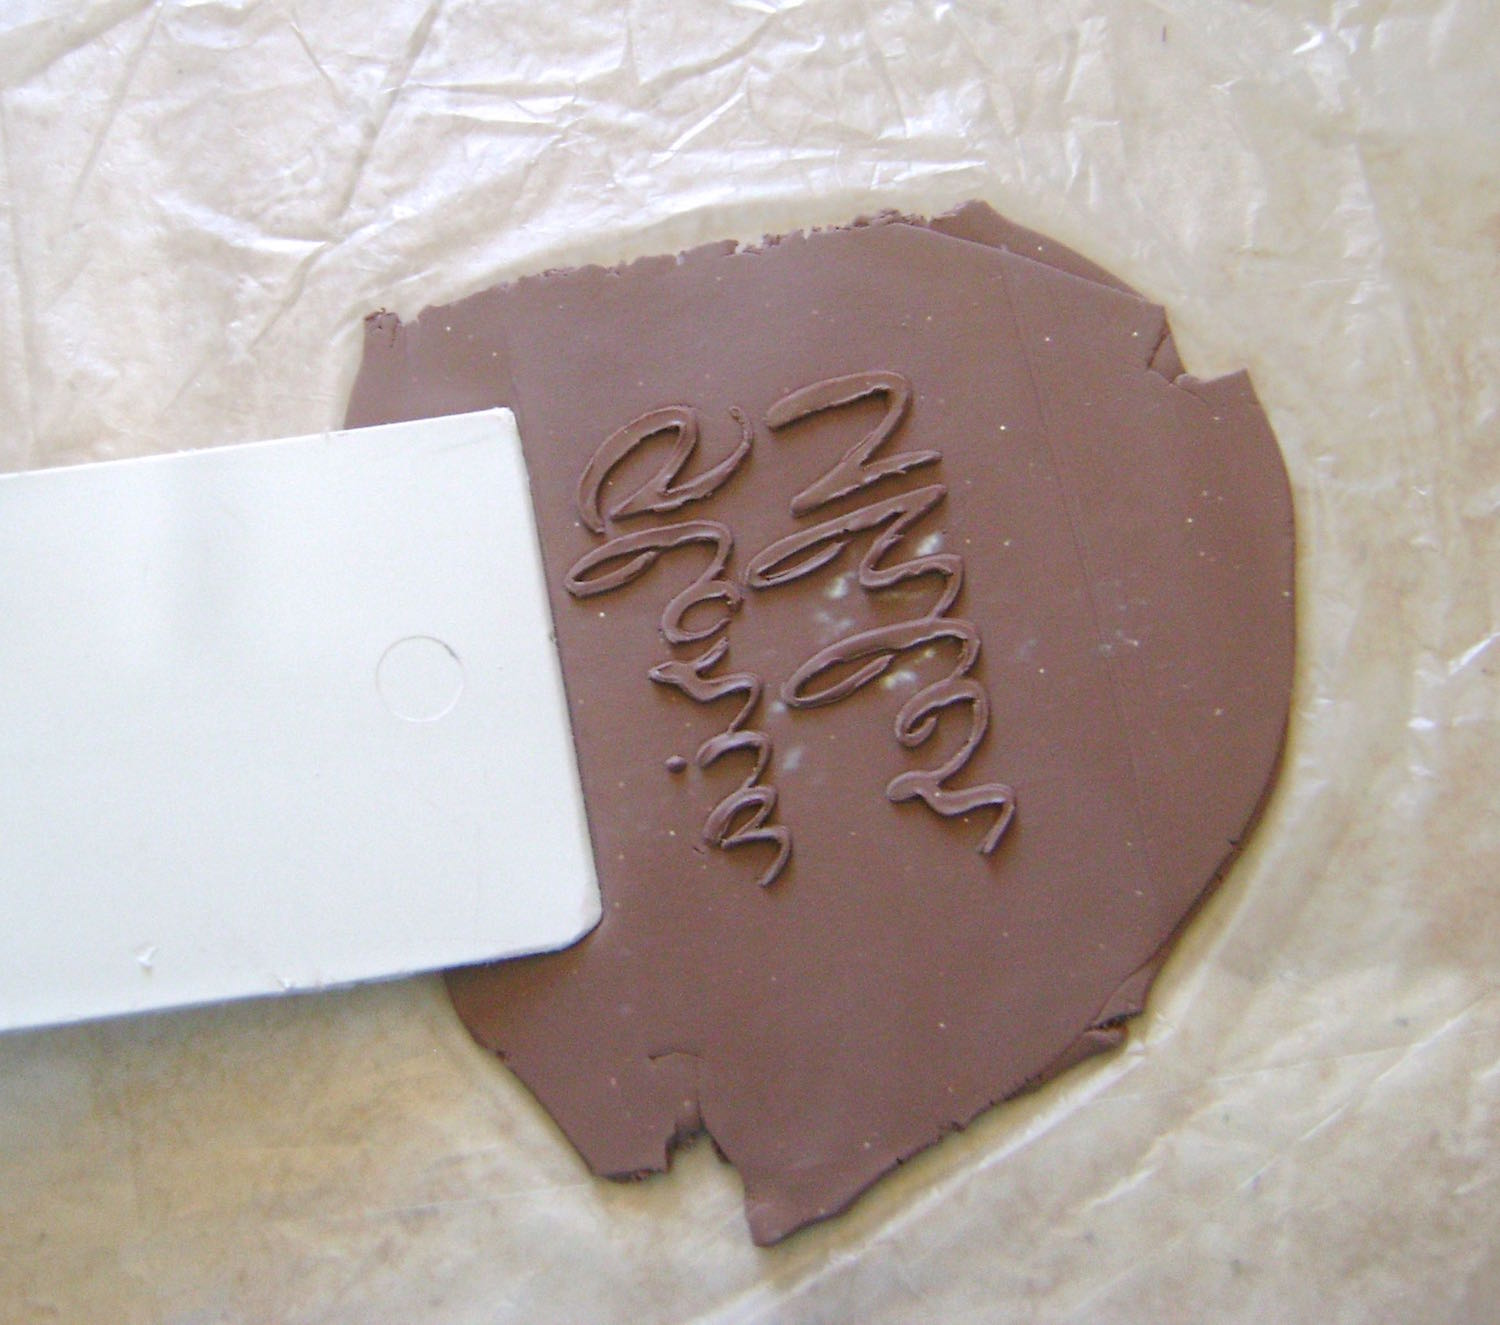 step 5 - Press a plastic spatula outside the signature area to flatten the surrounding clay slightly.